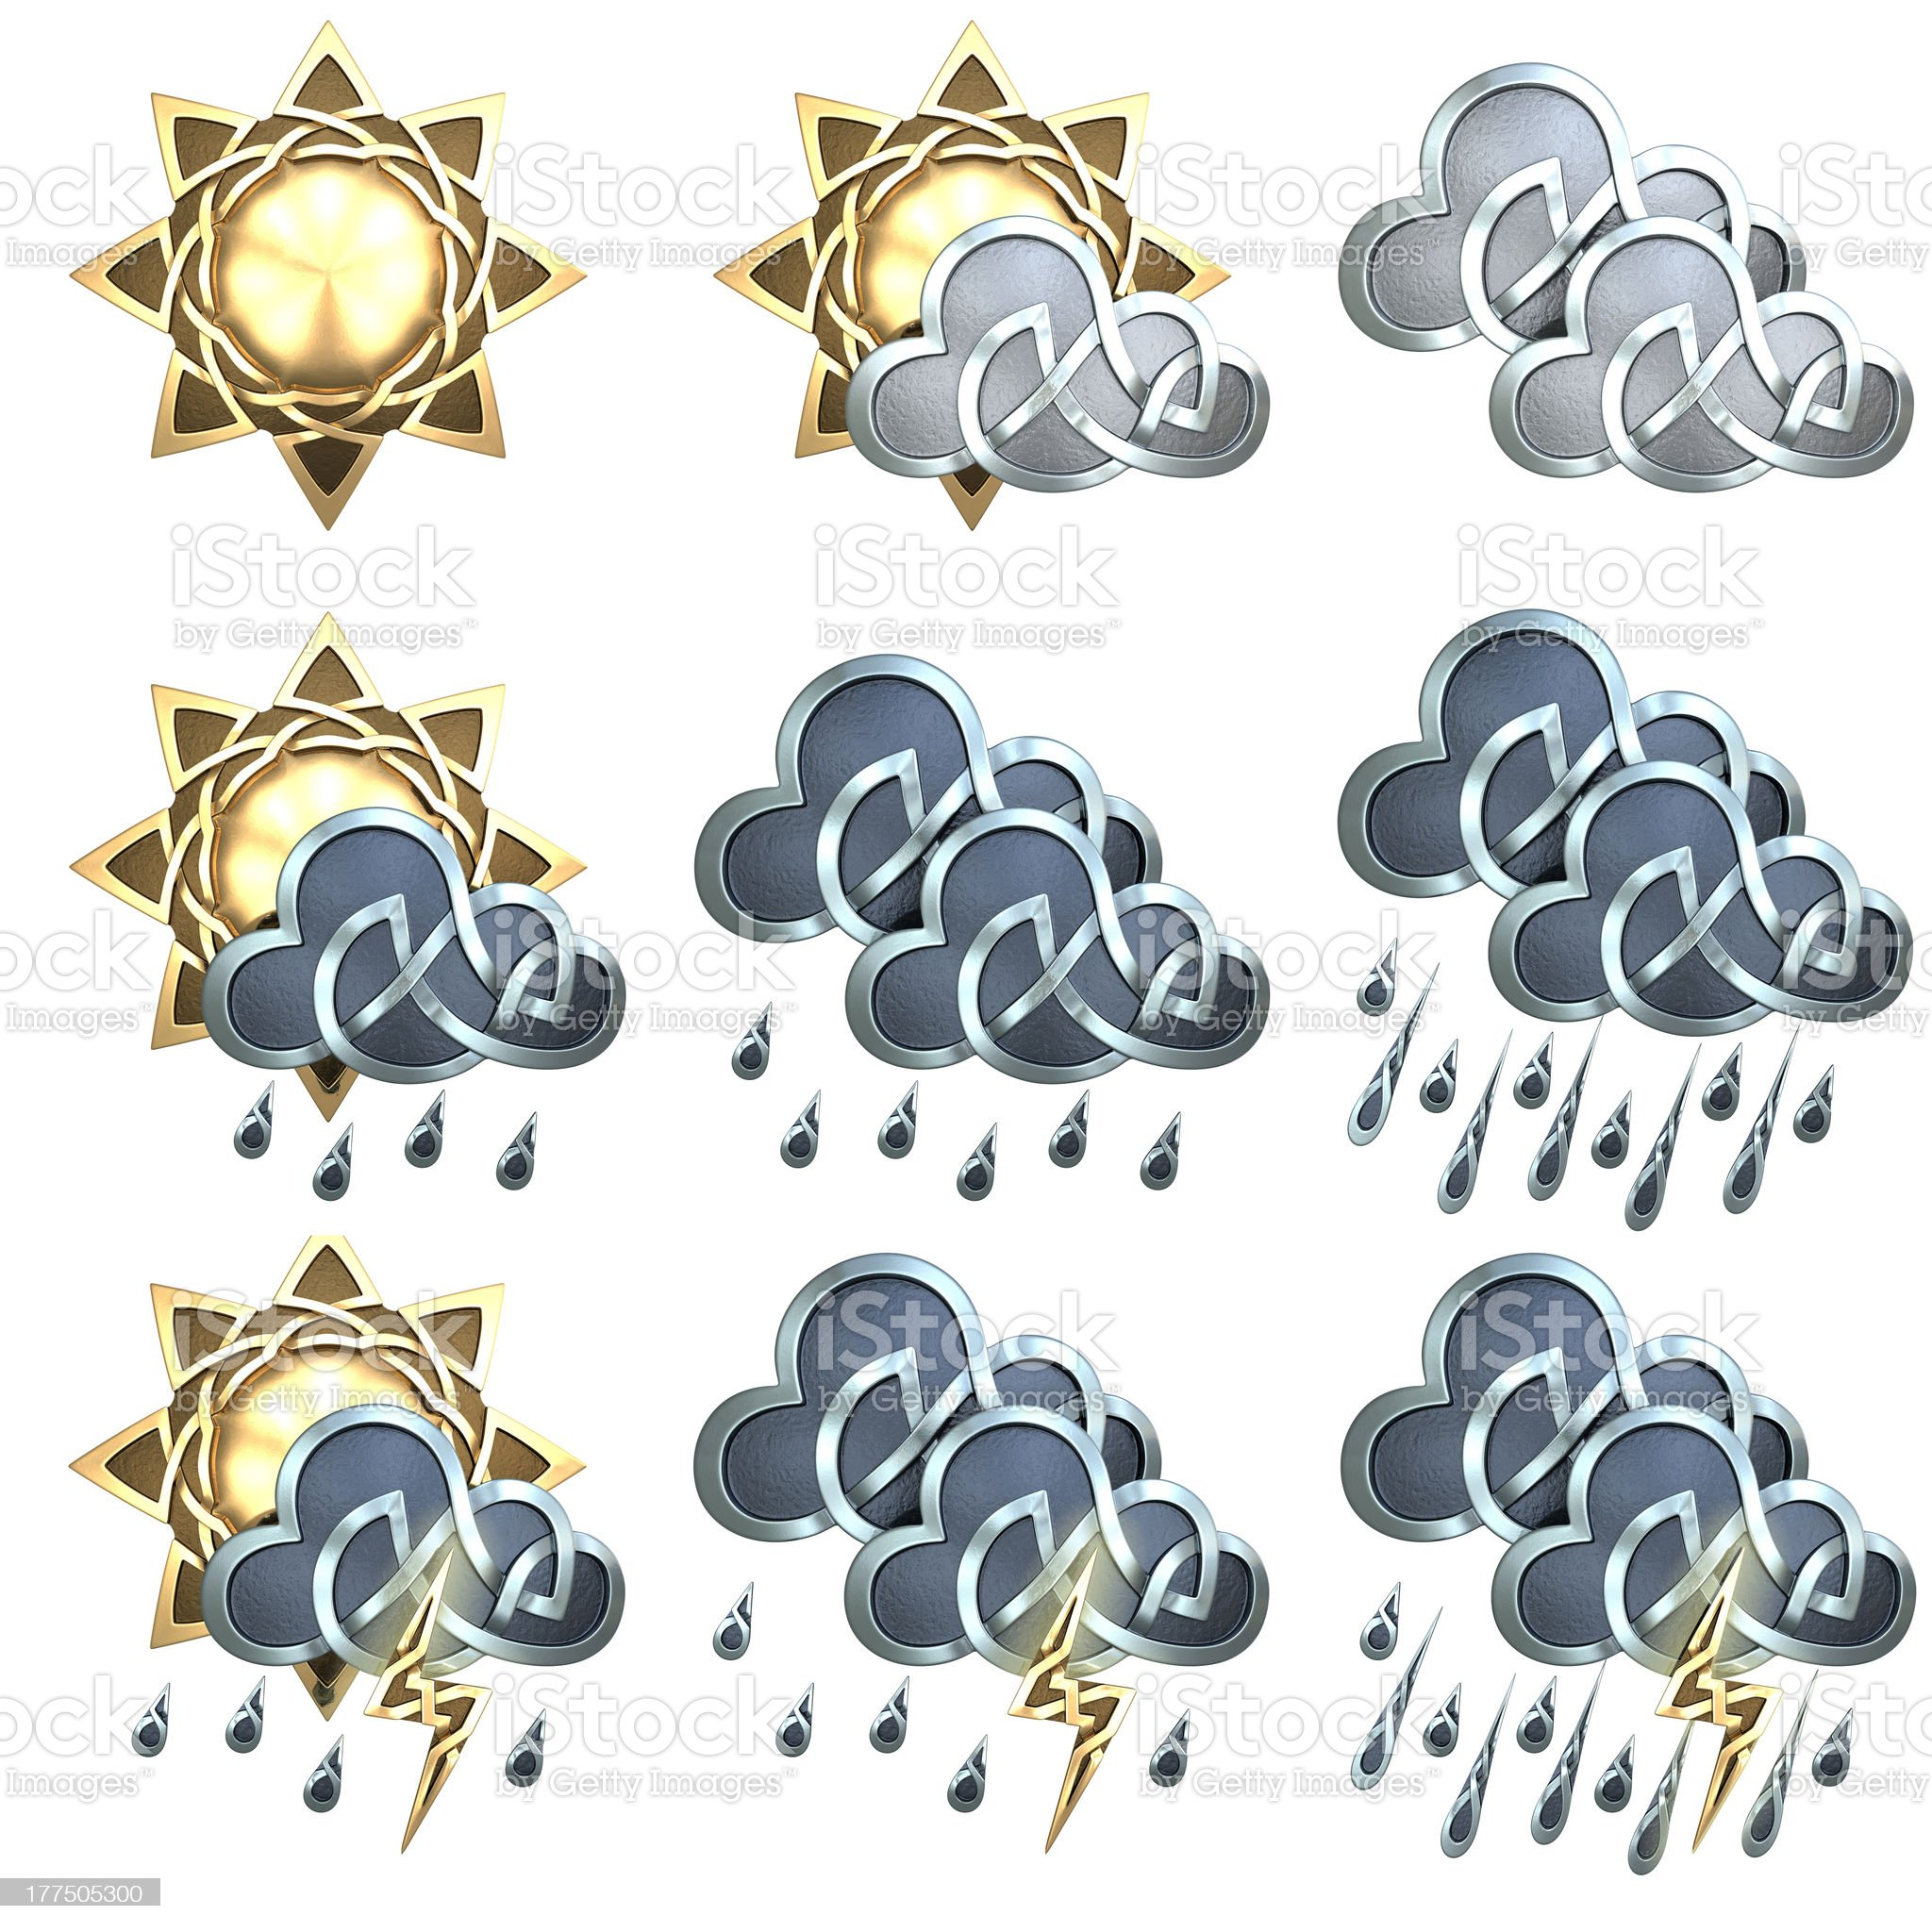 Weather Icons - 1 royalty-free stock photo